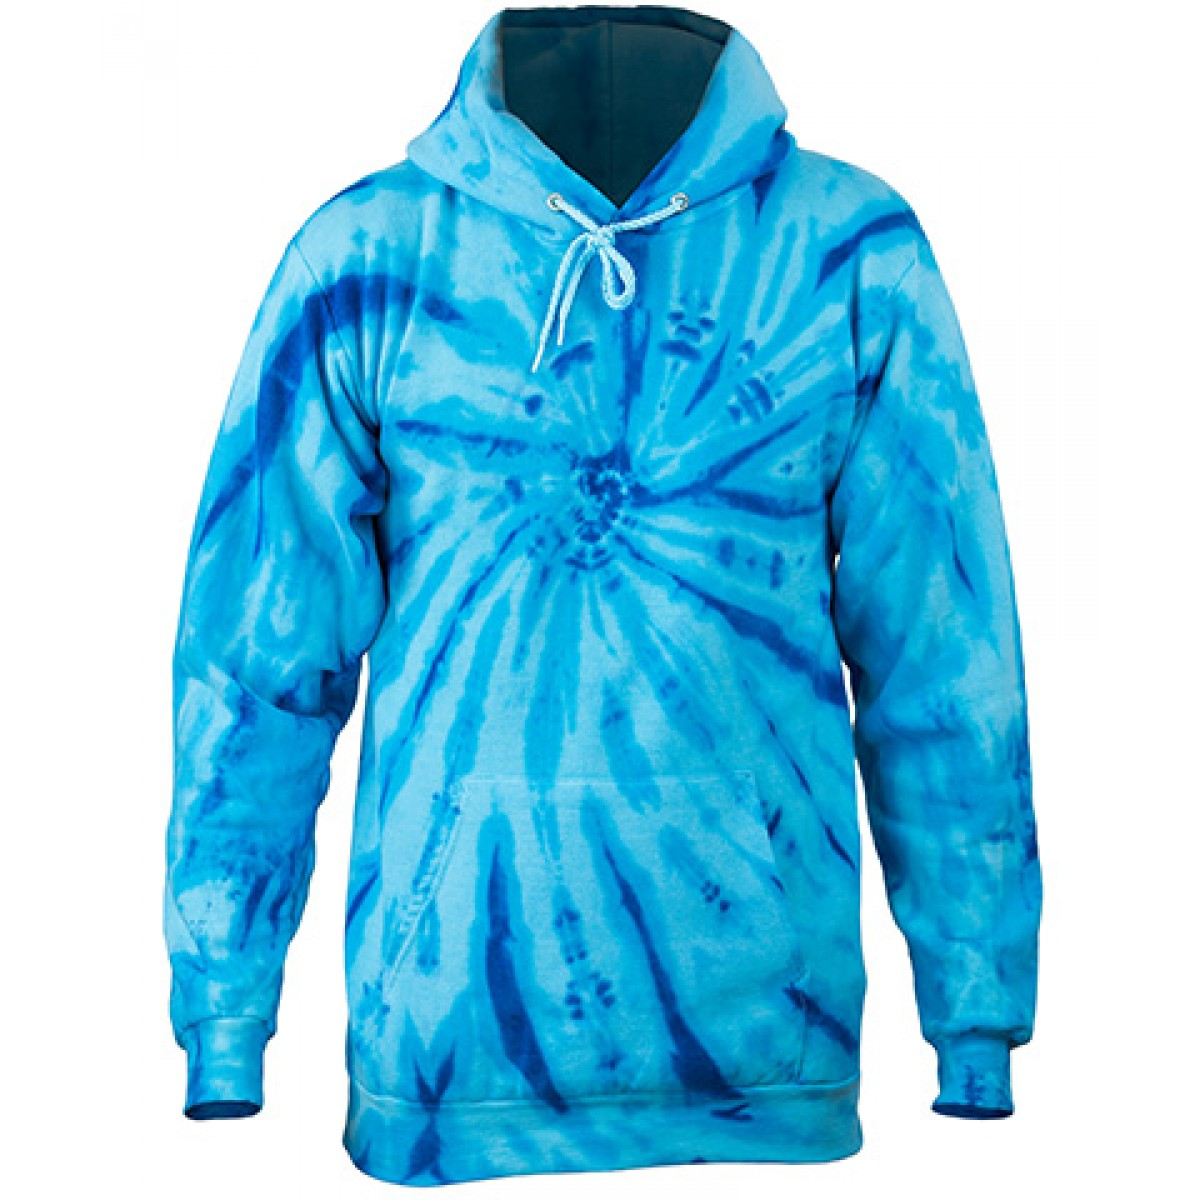 Tie-Dye Pullover Hooded Sweatshirt-Tropic Blue-L